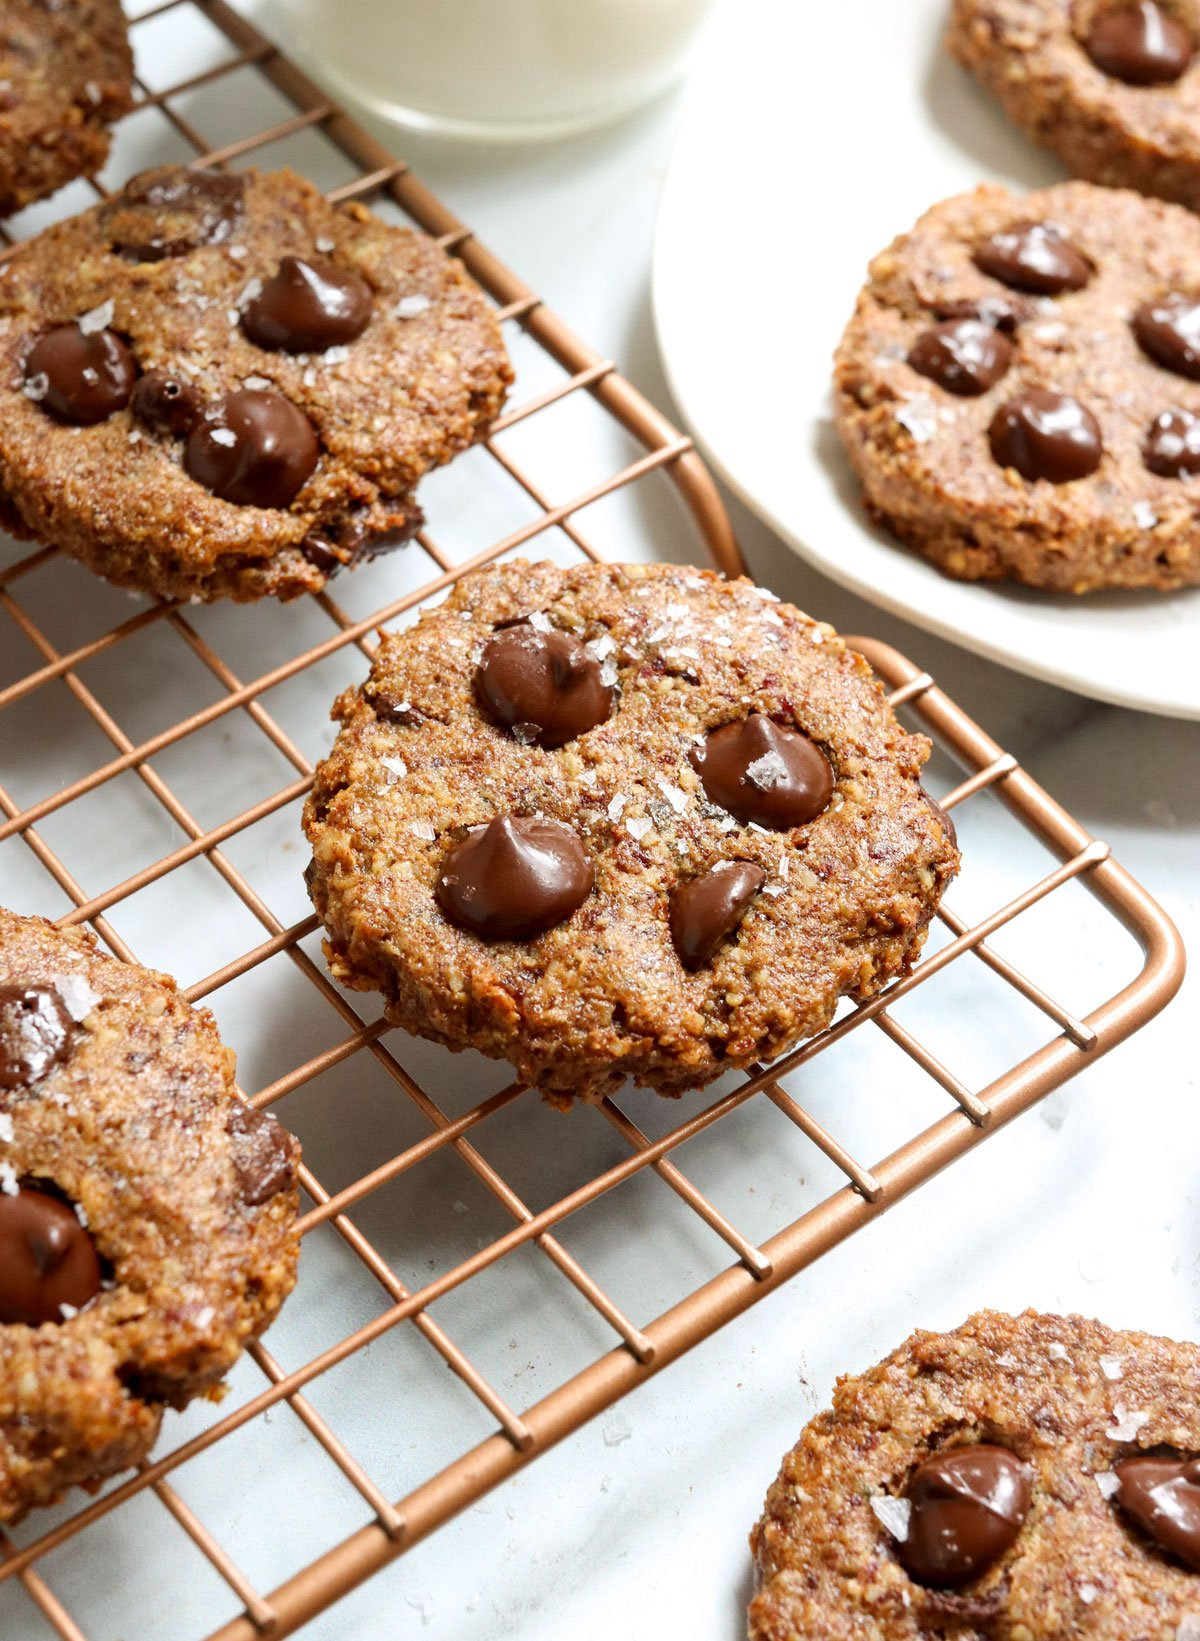 healthy cookie at an angle on wire rack